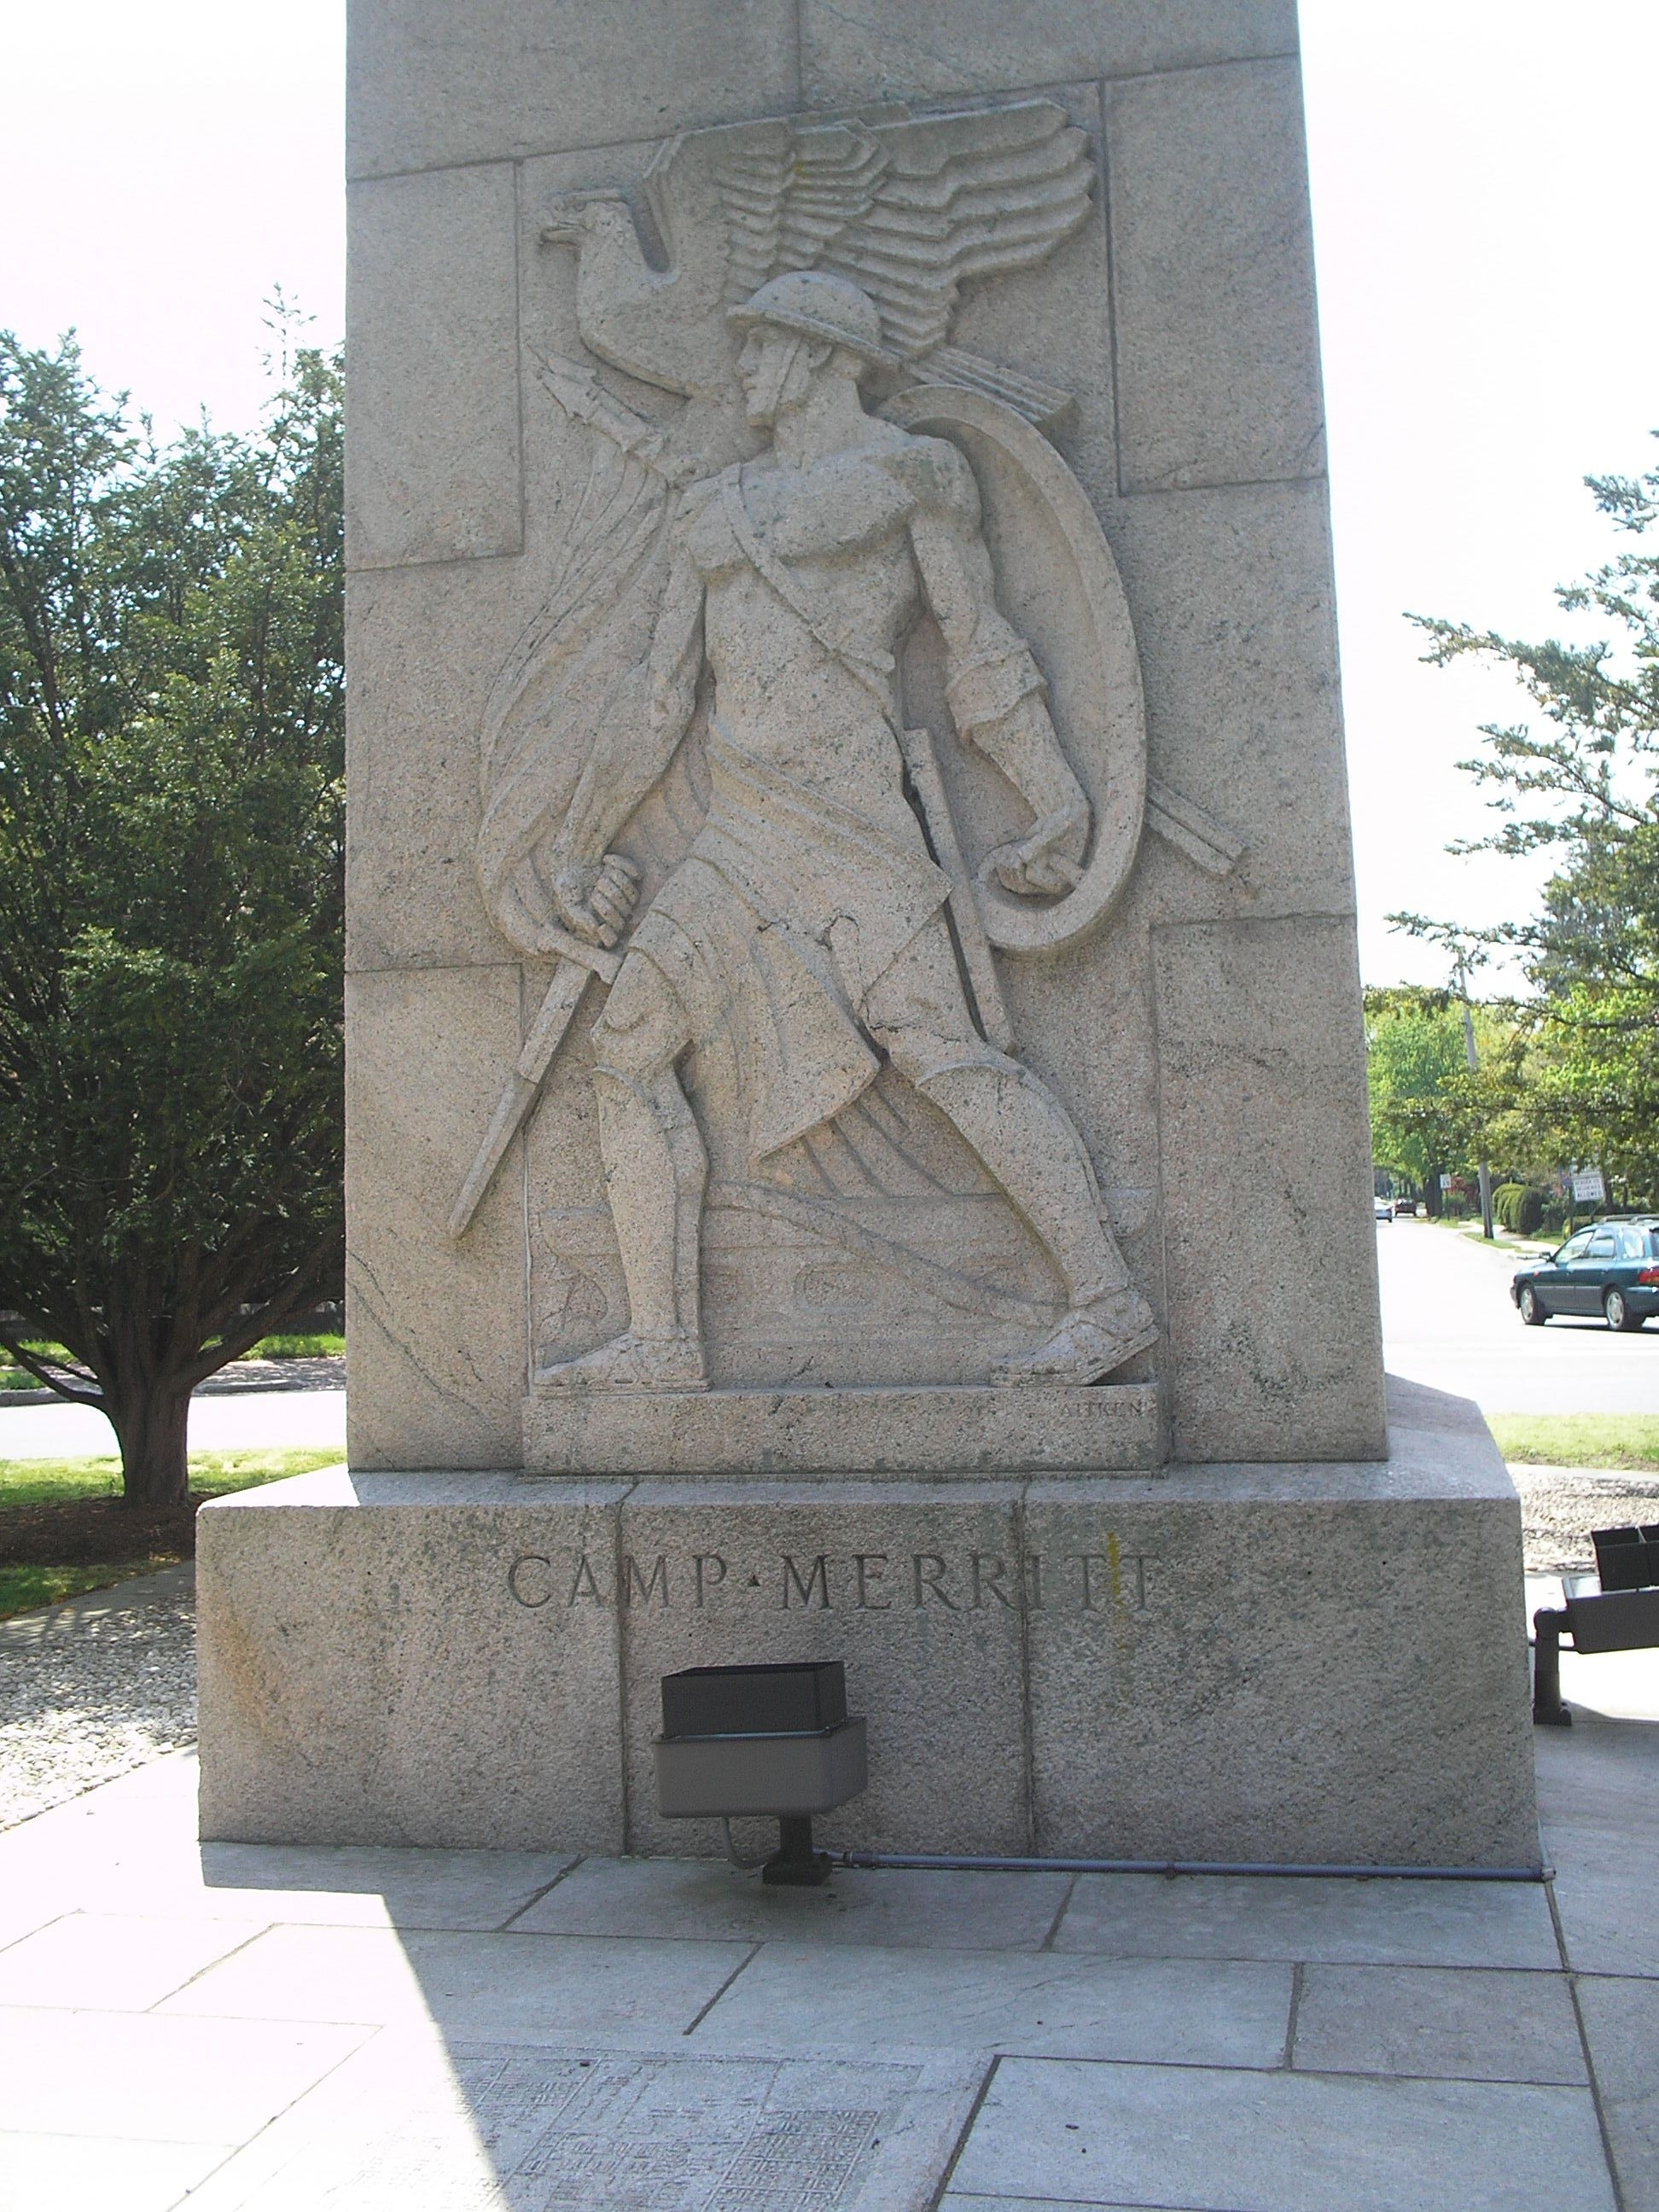 North side of Monument